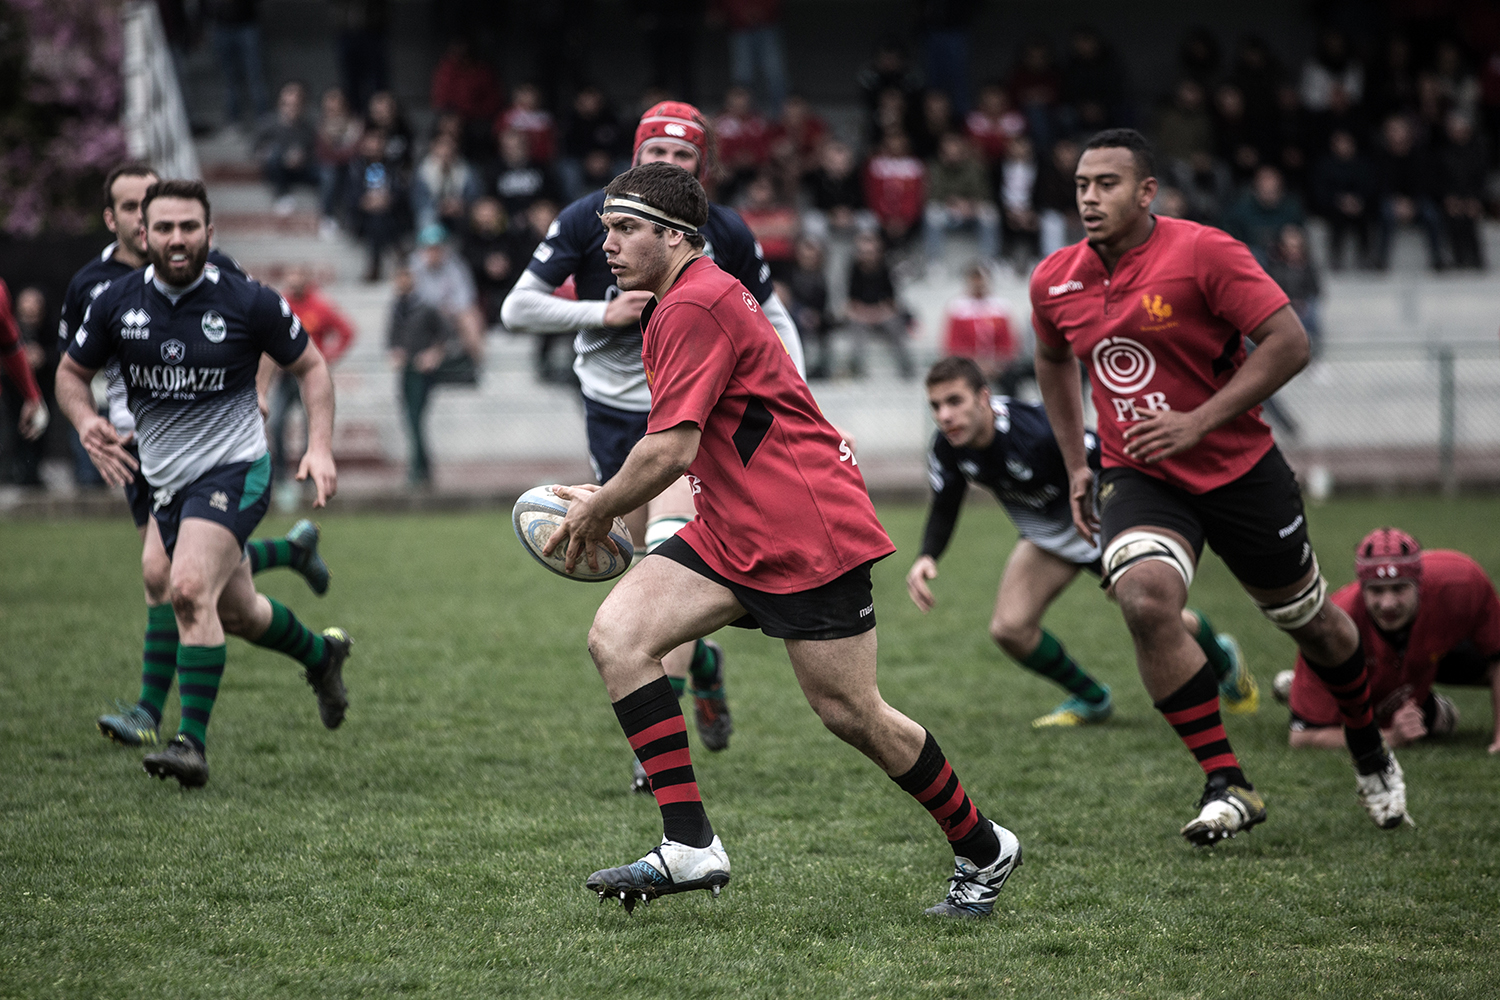 rugby_photograph_30.jpg